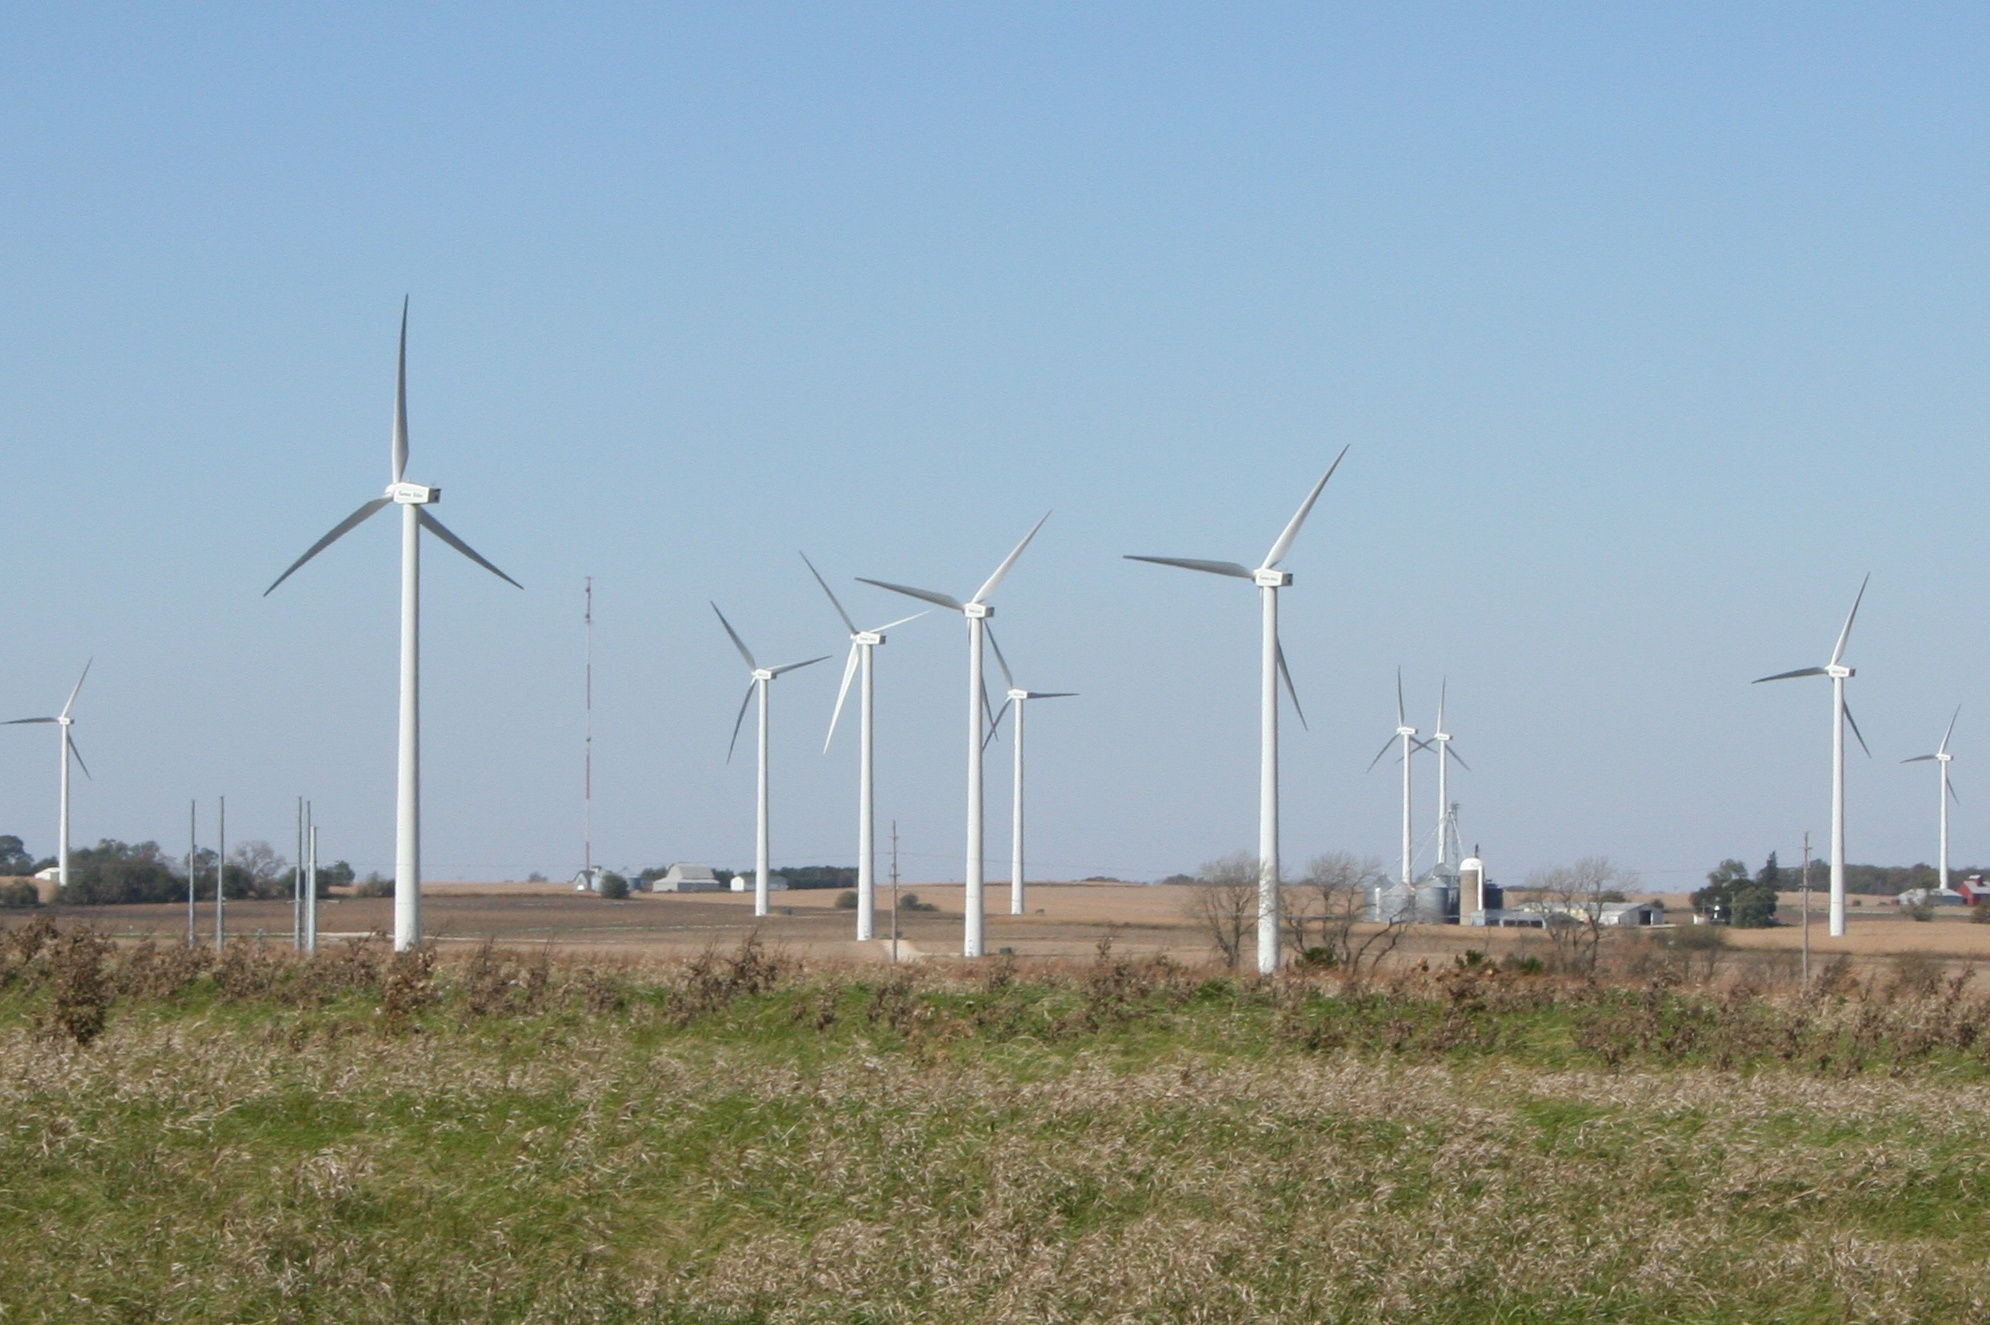 illinois_wind_farm_near_i-39_exit_82